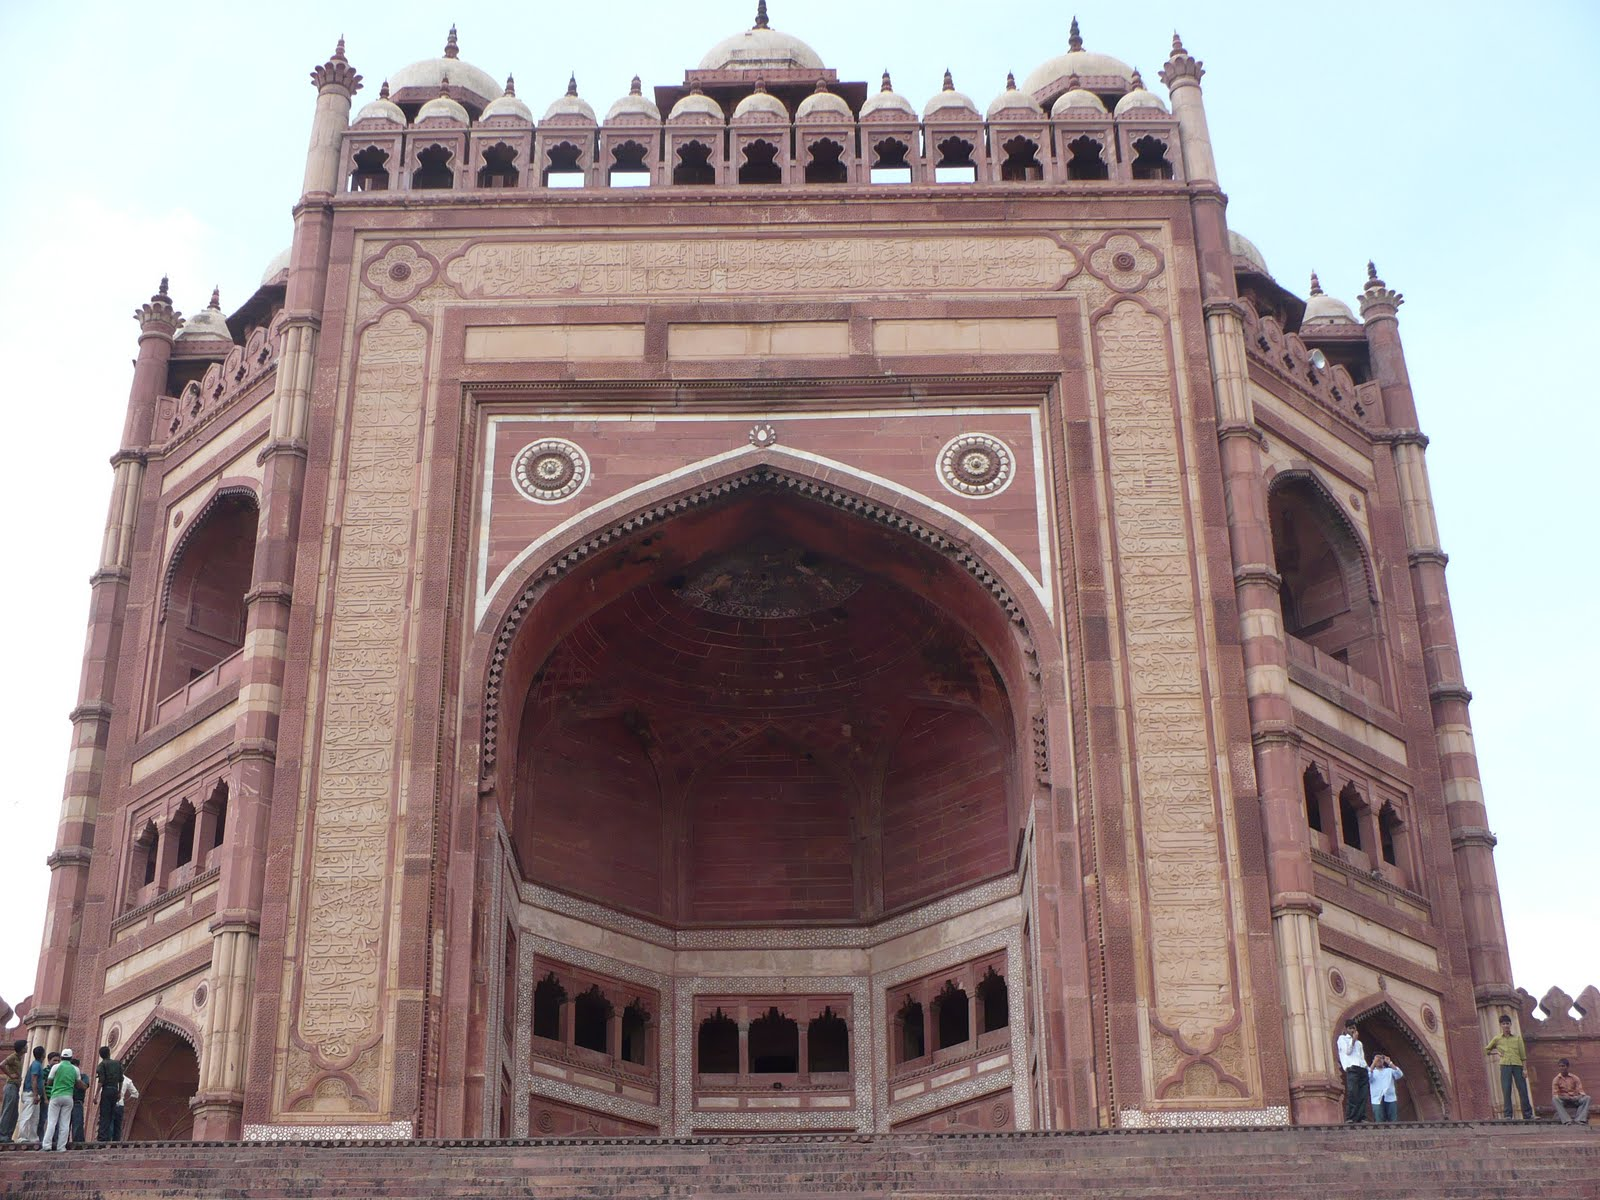 fatehpuri sikri Book your tickets online for the top things to do in fatehpur sikri, india on tripadvisor: see 2,567 traveler reviews and photos of fatehpur sikri tourist attractions.